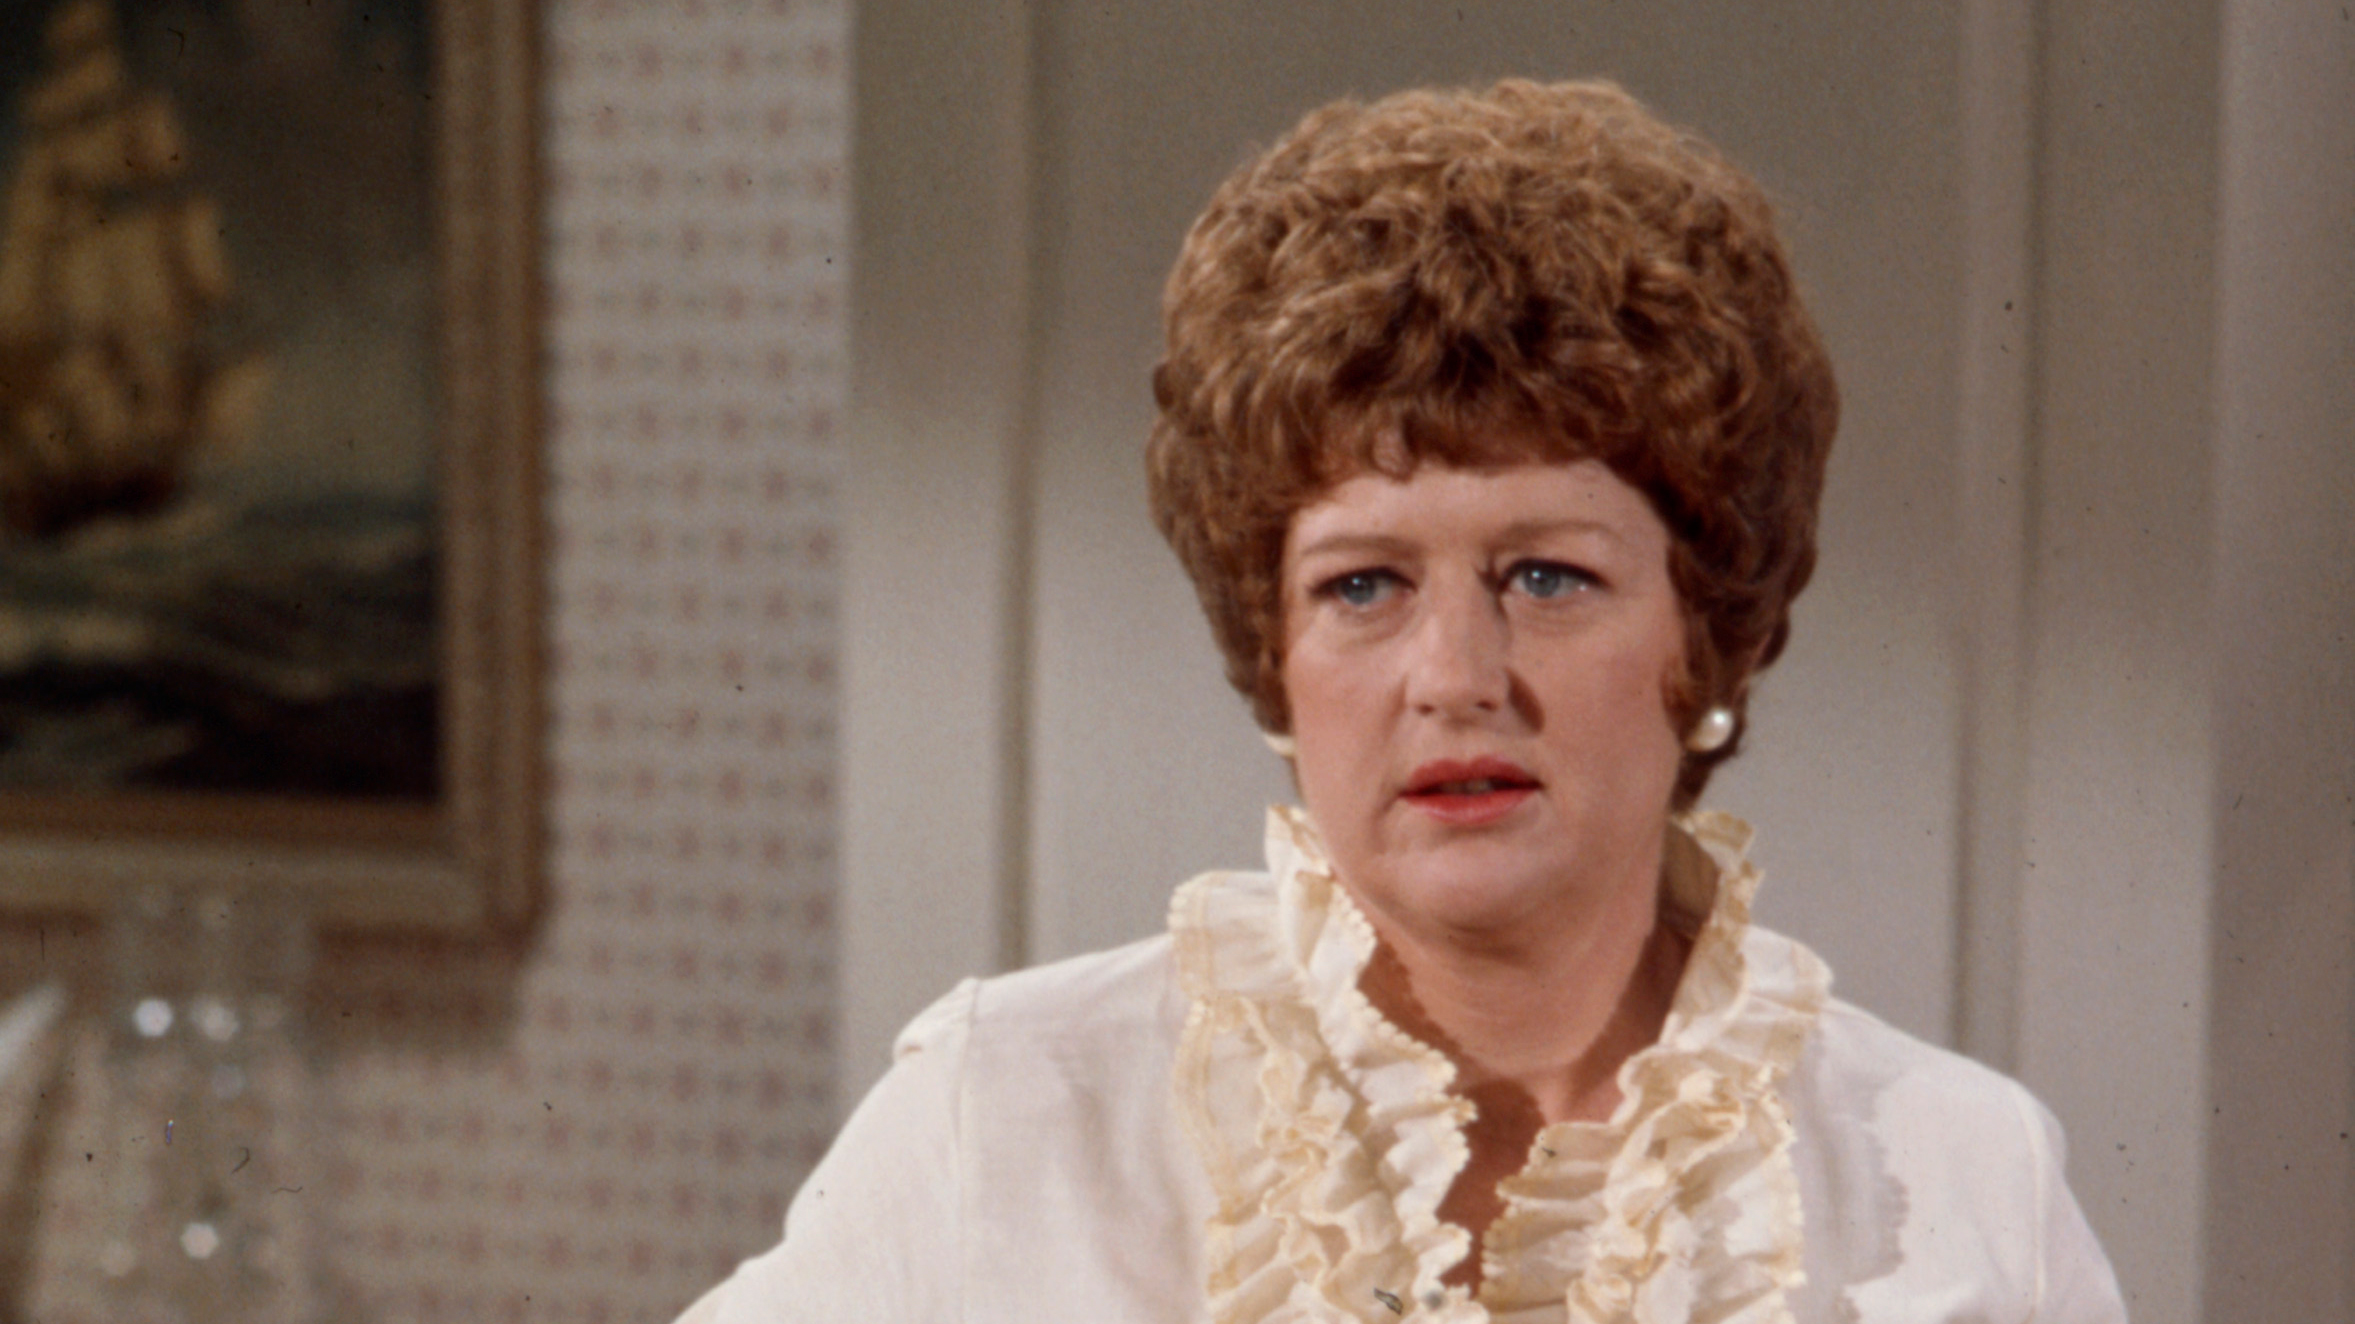 Peggy Pope, the Comedic Secretary in '9 to 5', Dies at 91